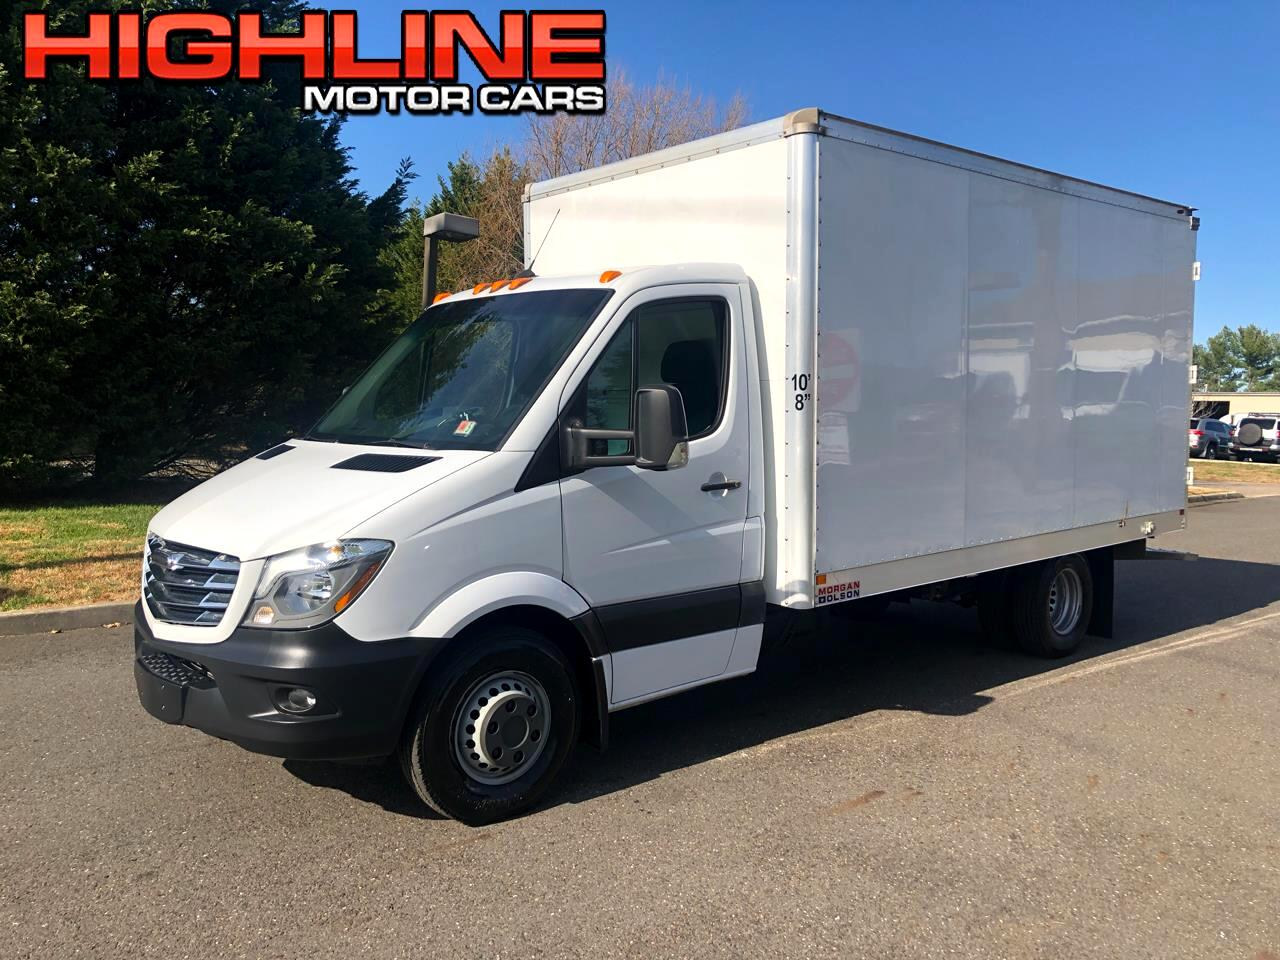 2015 Mercedes-Benz Sprinter Chassis-Cabs